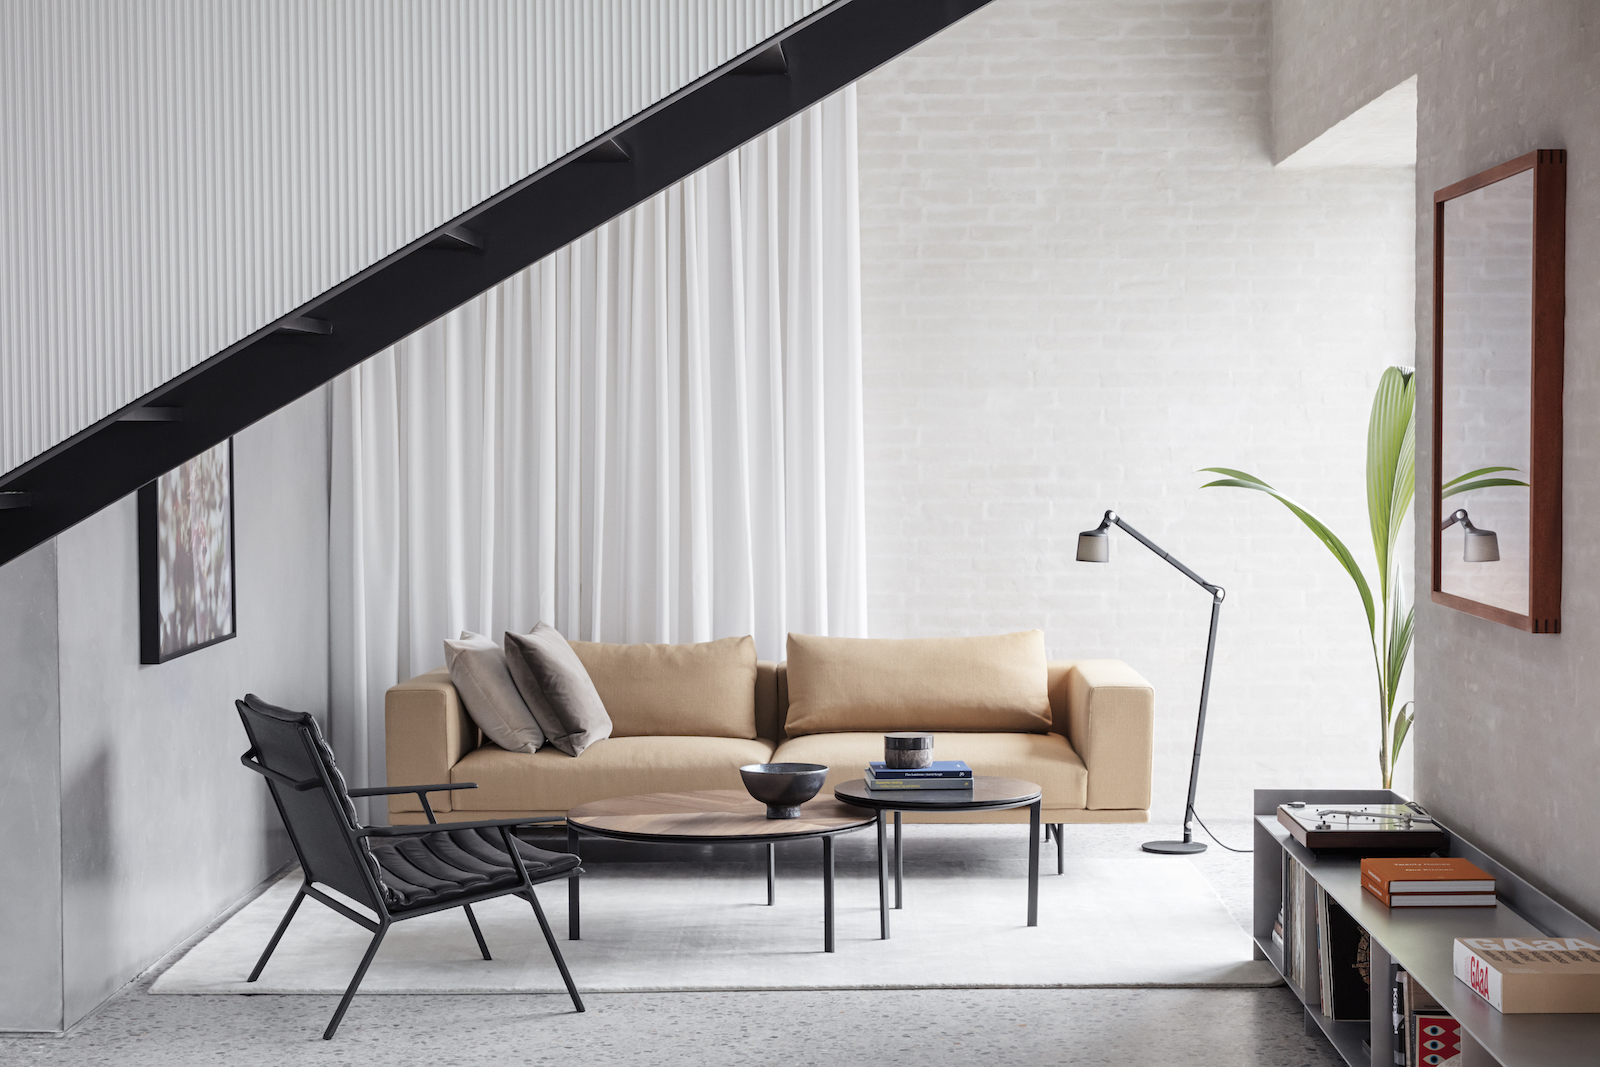 Living room with modern furniture